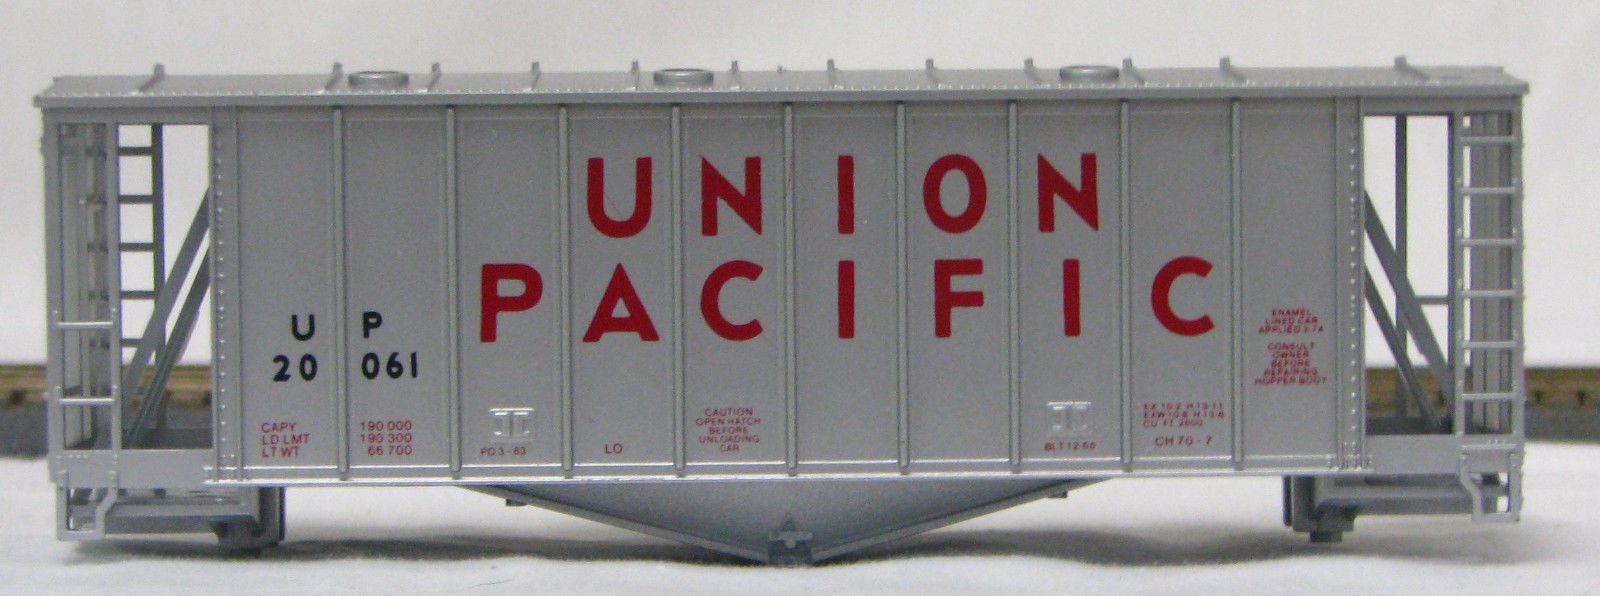 HO 2600 Cu Ft Airslide Covered Hopper (Kit) Union Pacific (1960's) (01-9717)